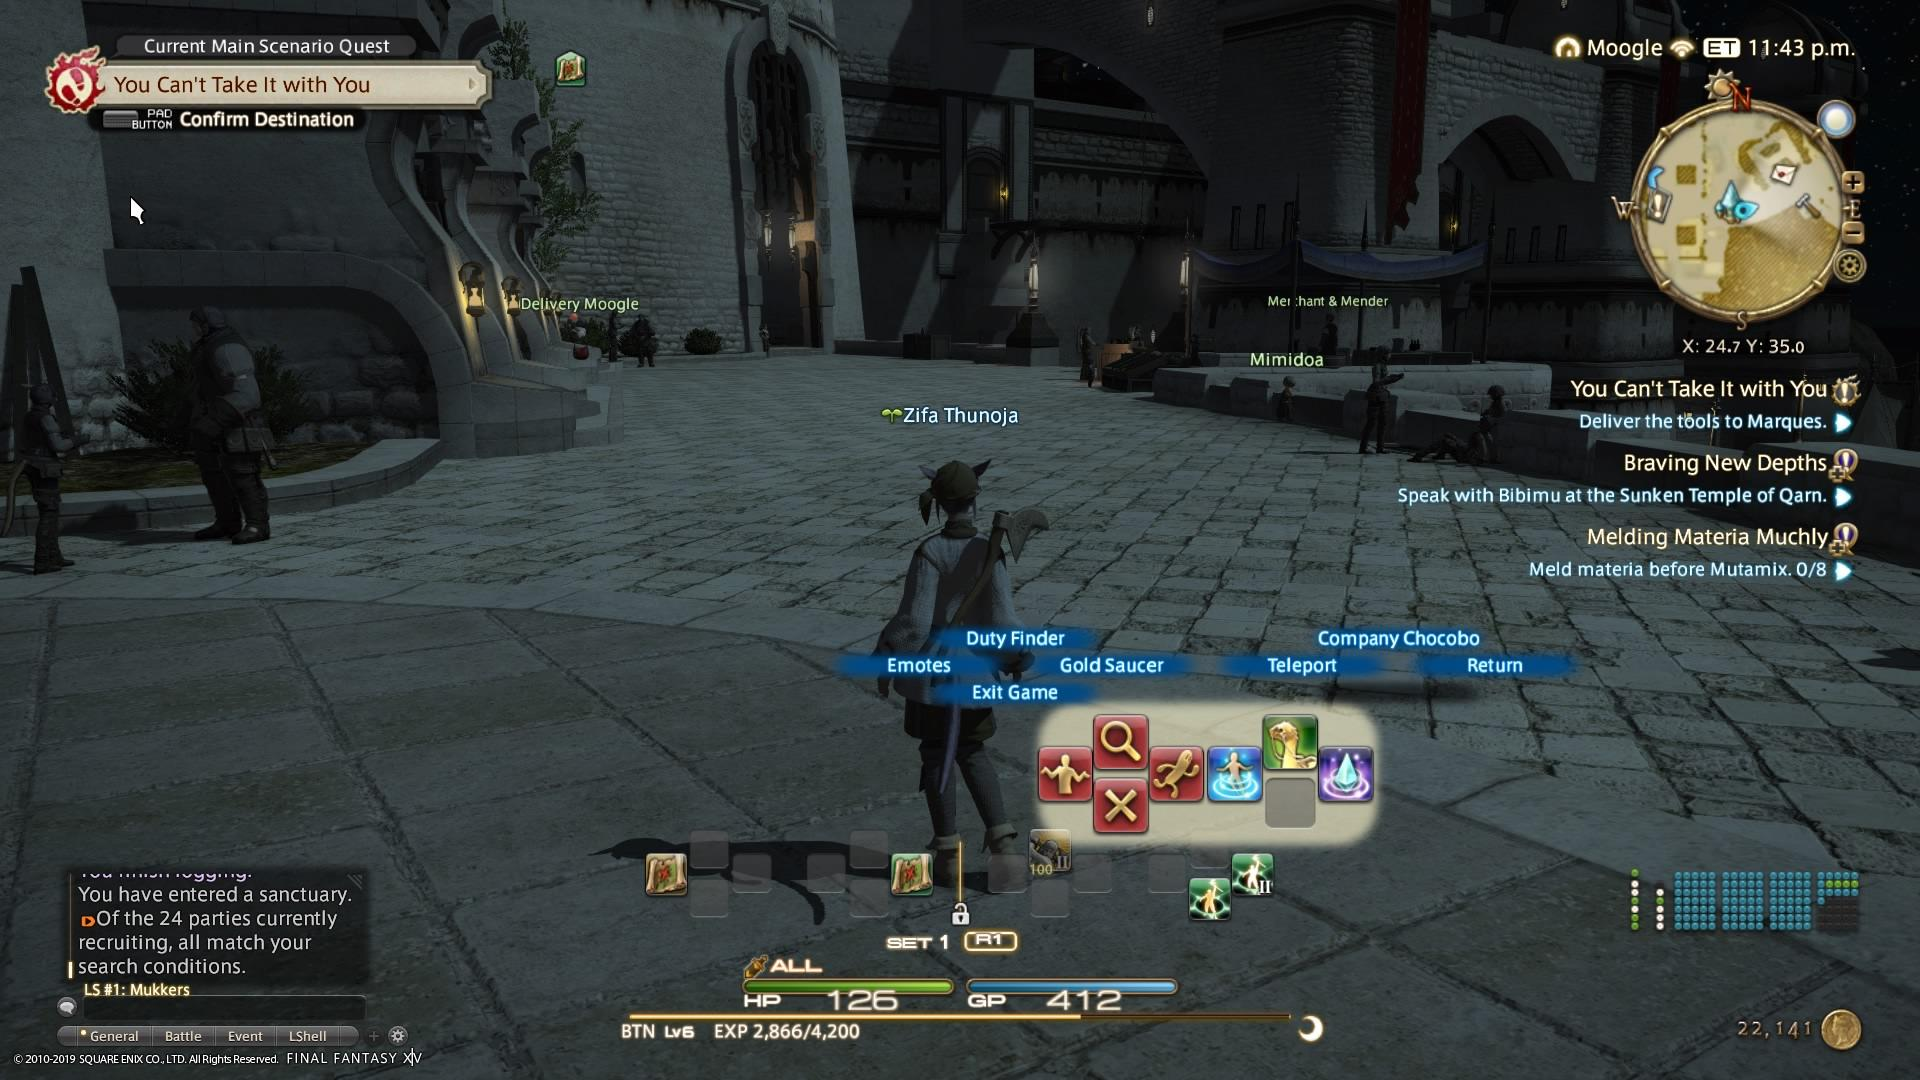 Final Fantasy XIV: Online First post updated with lots of